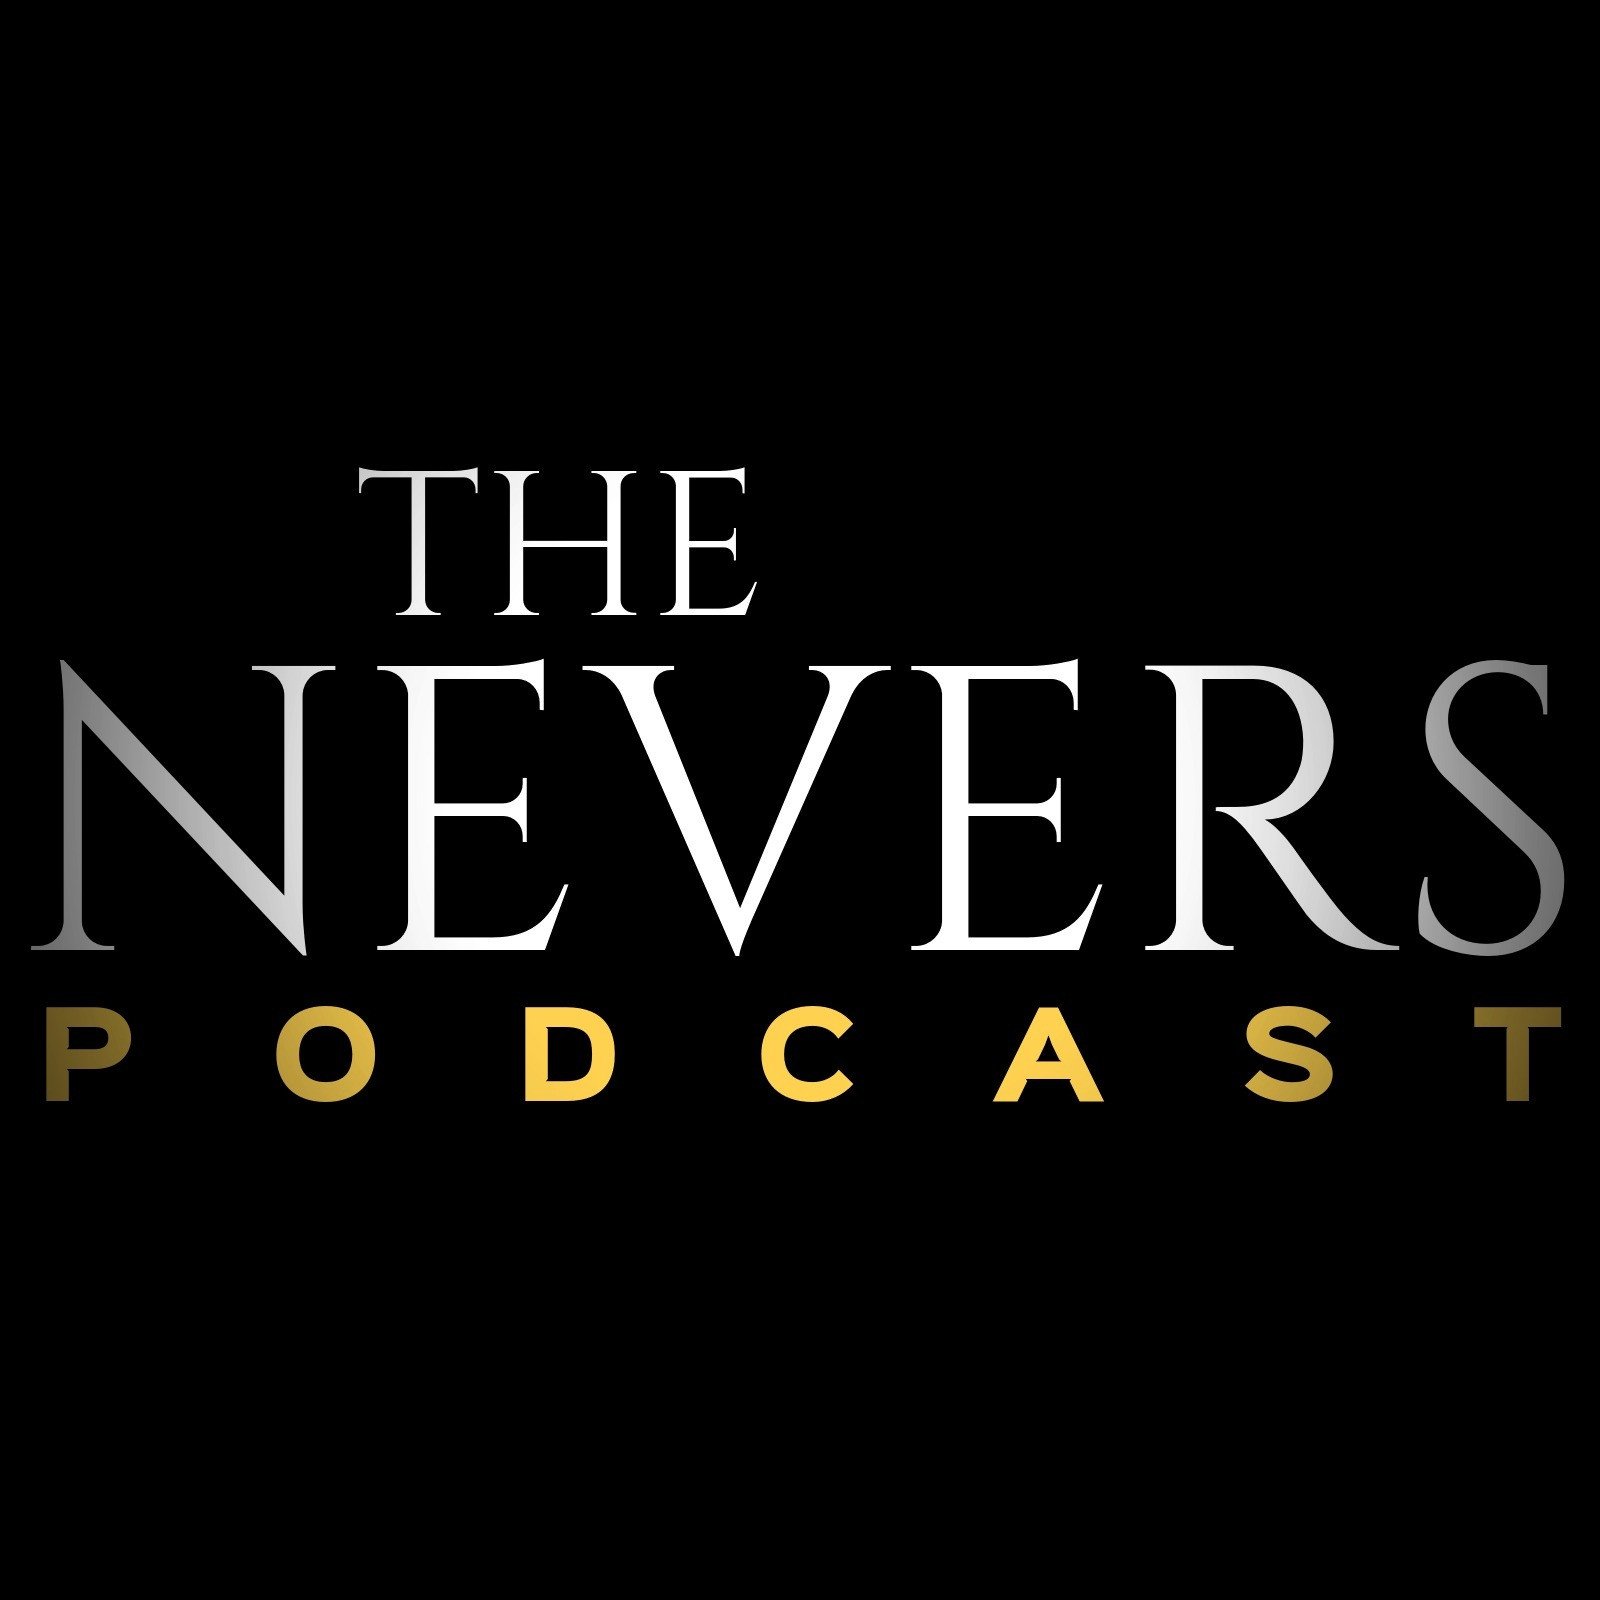 The Nevers Podcast show art